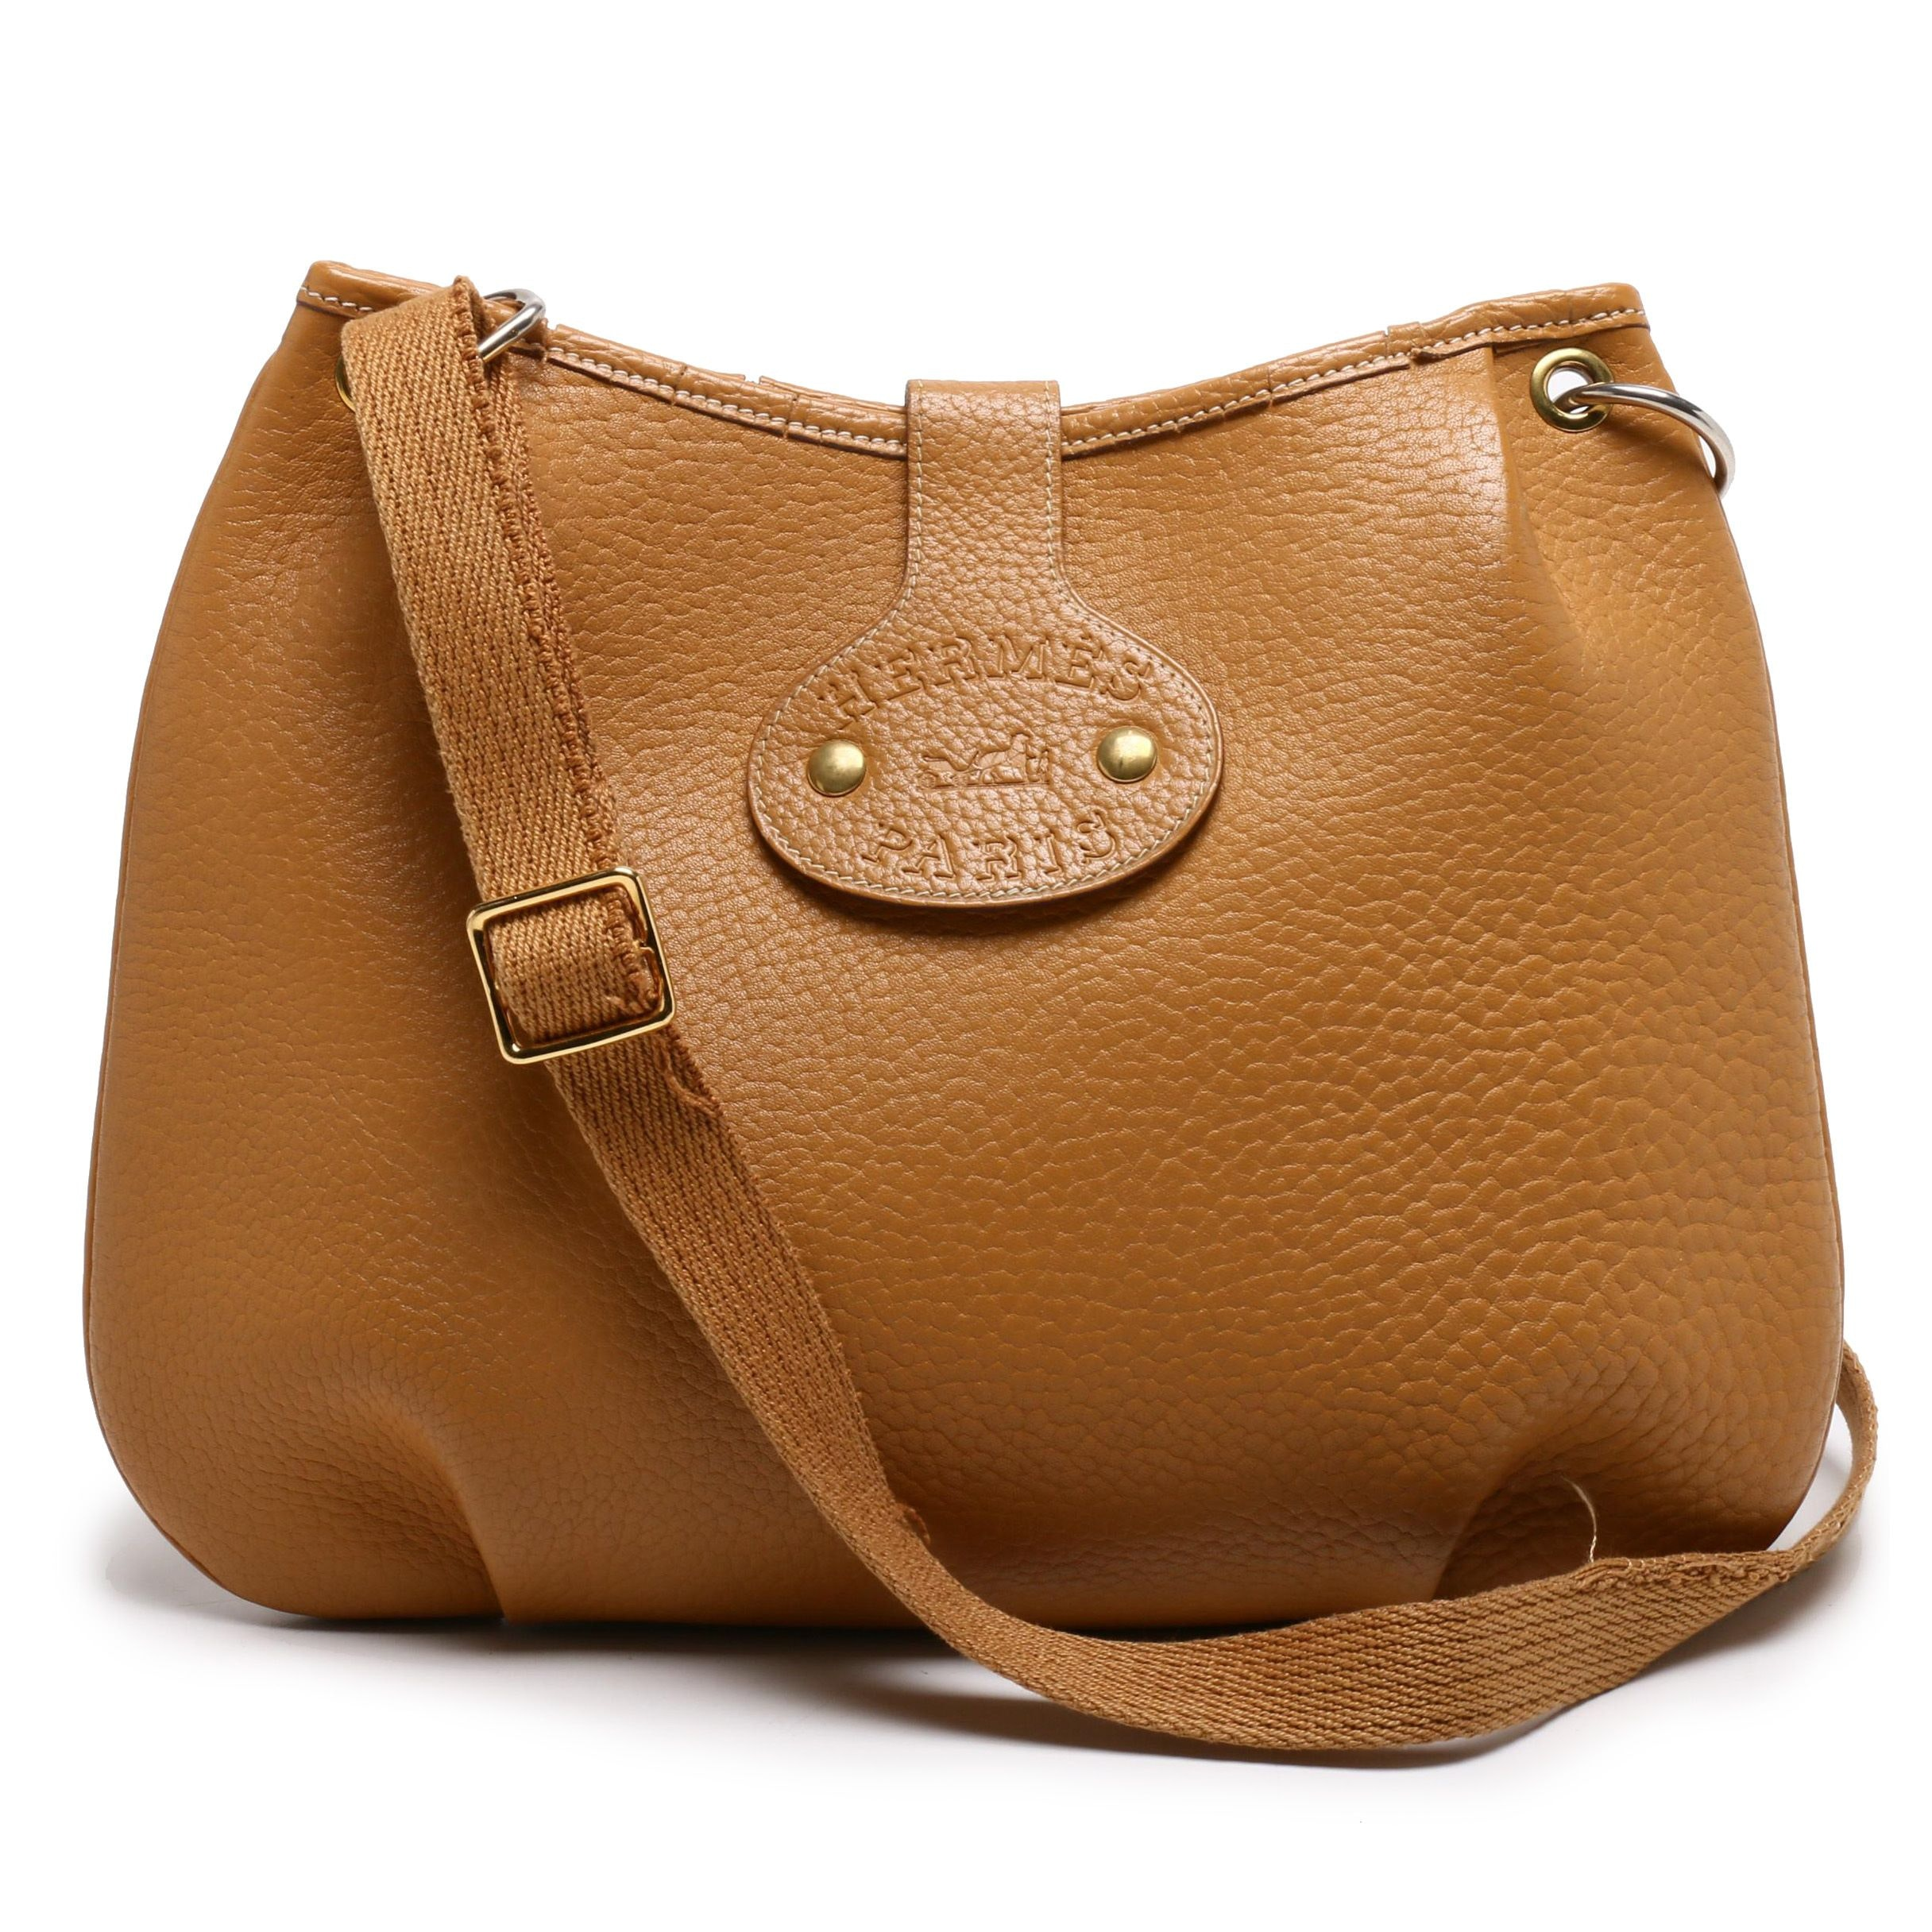 Hermès Paris Tan Clemence Leather Saddle Bag